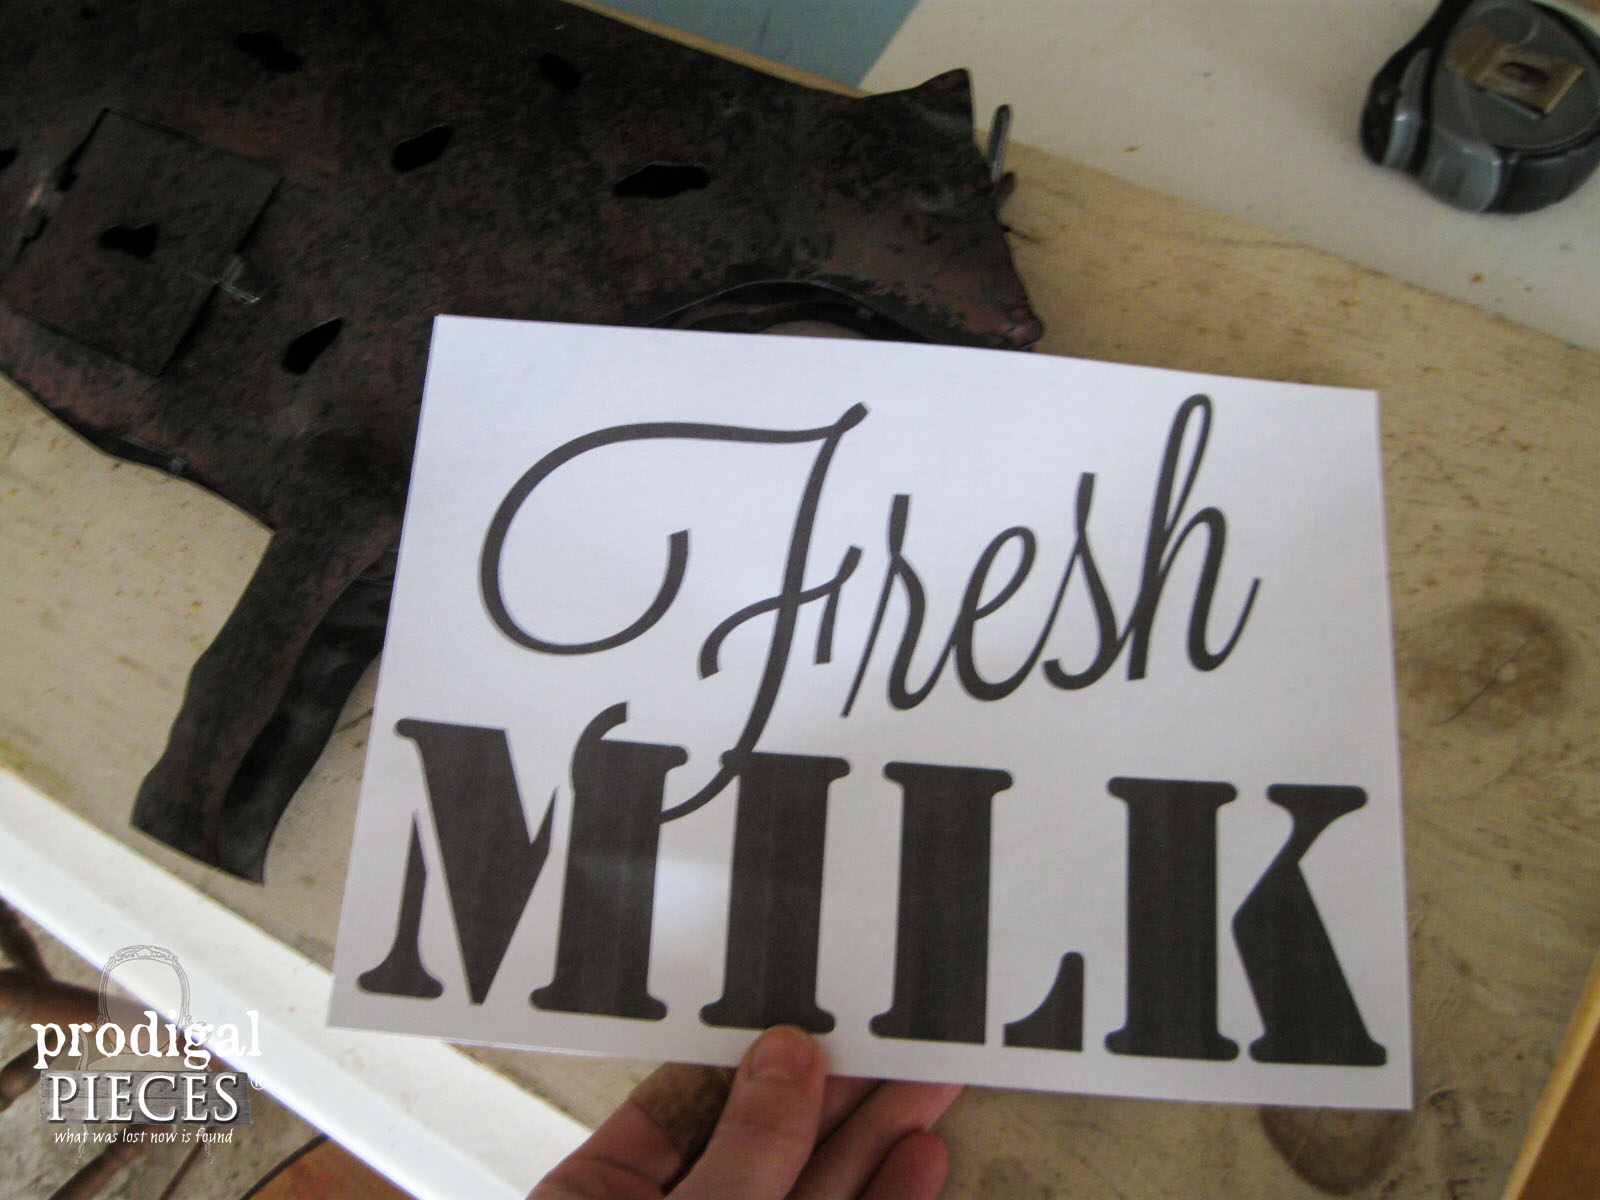 Fresh Milk Graphic for Metal Art | Prodigal Pieces | www.prodigalpieces.com